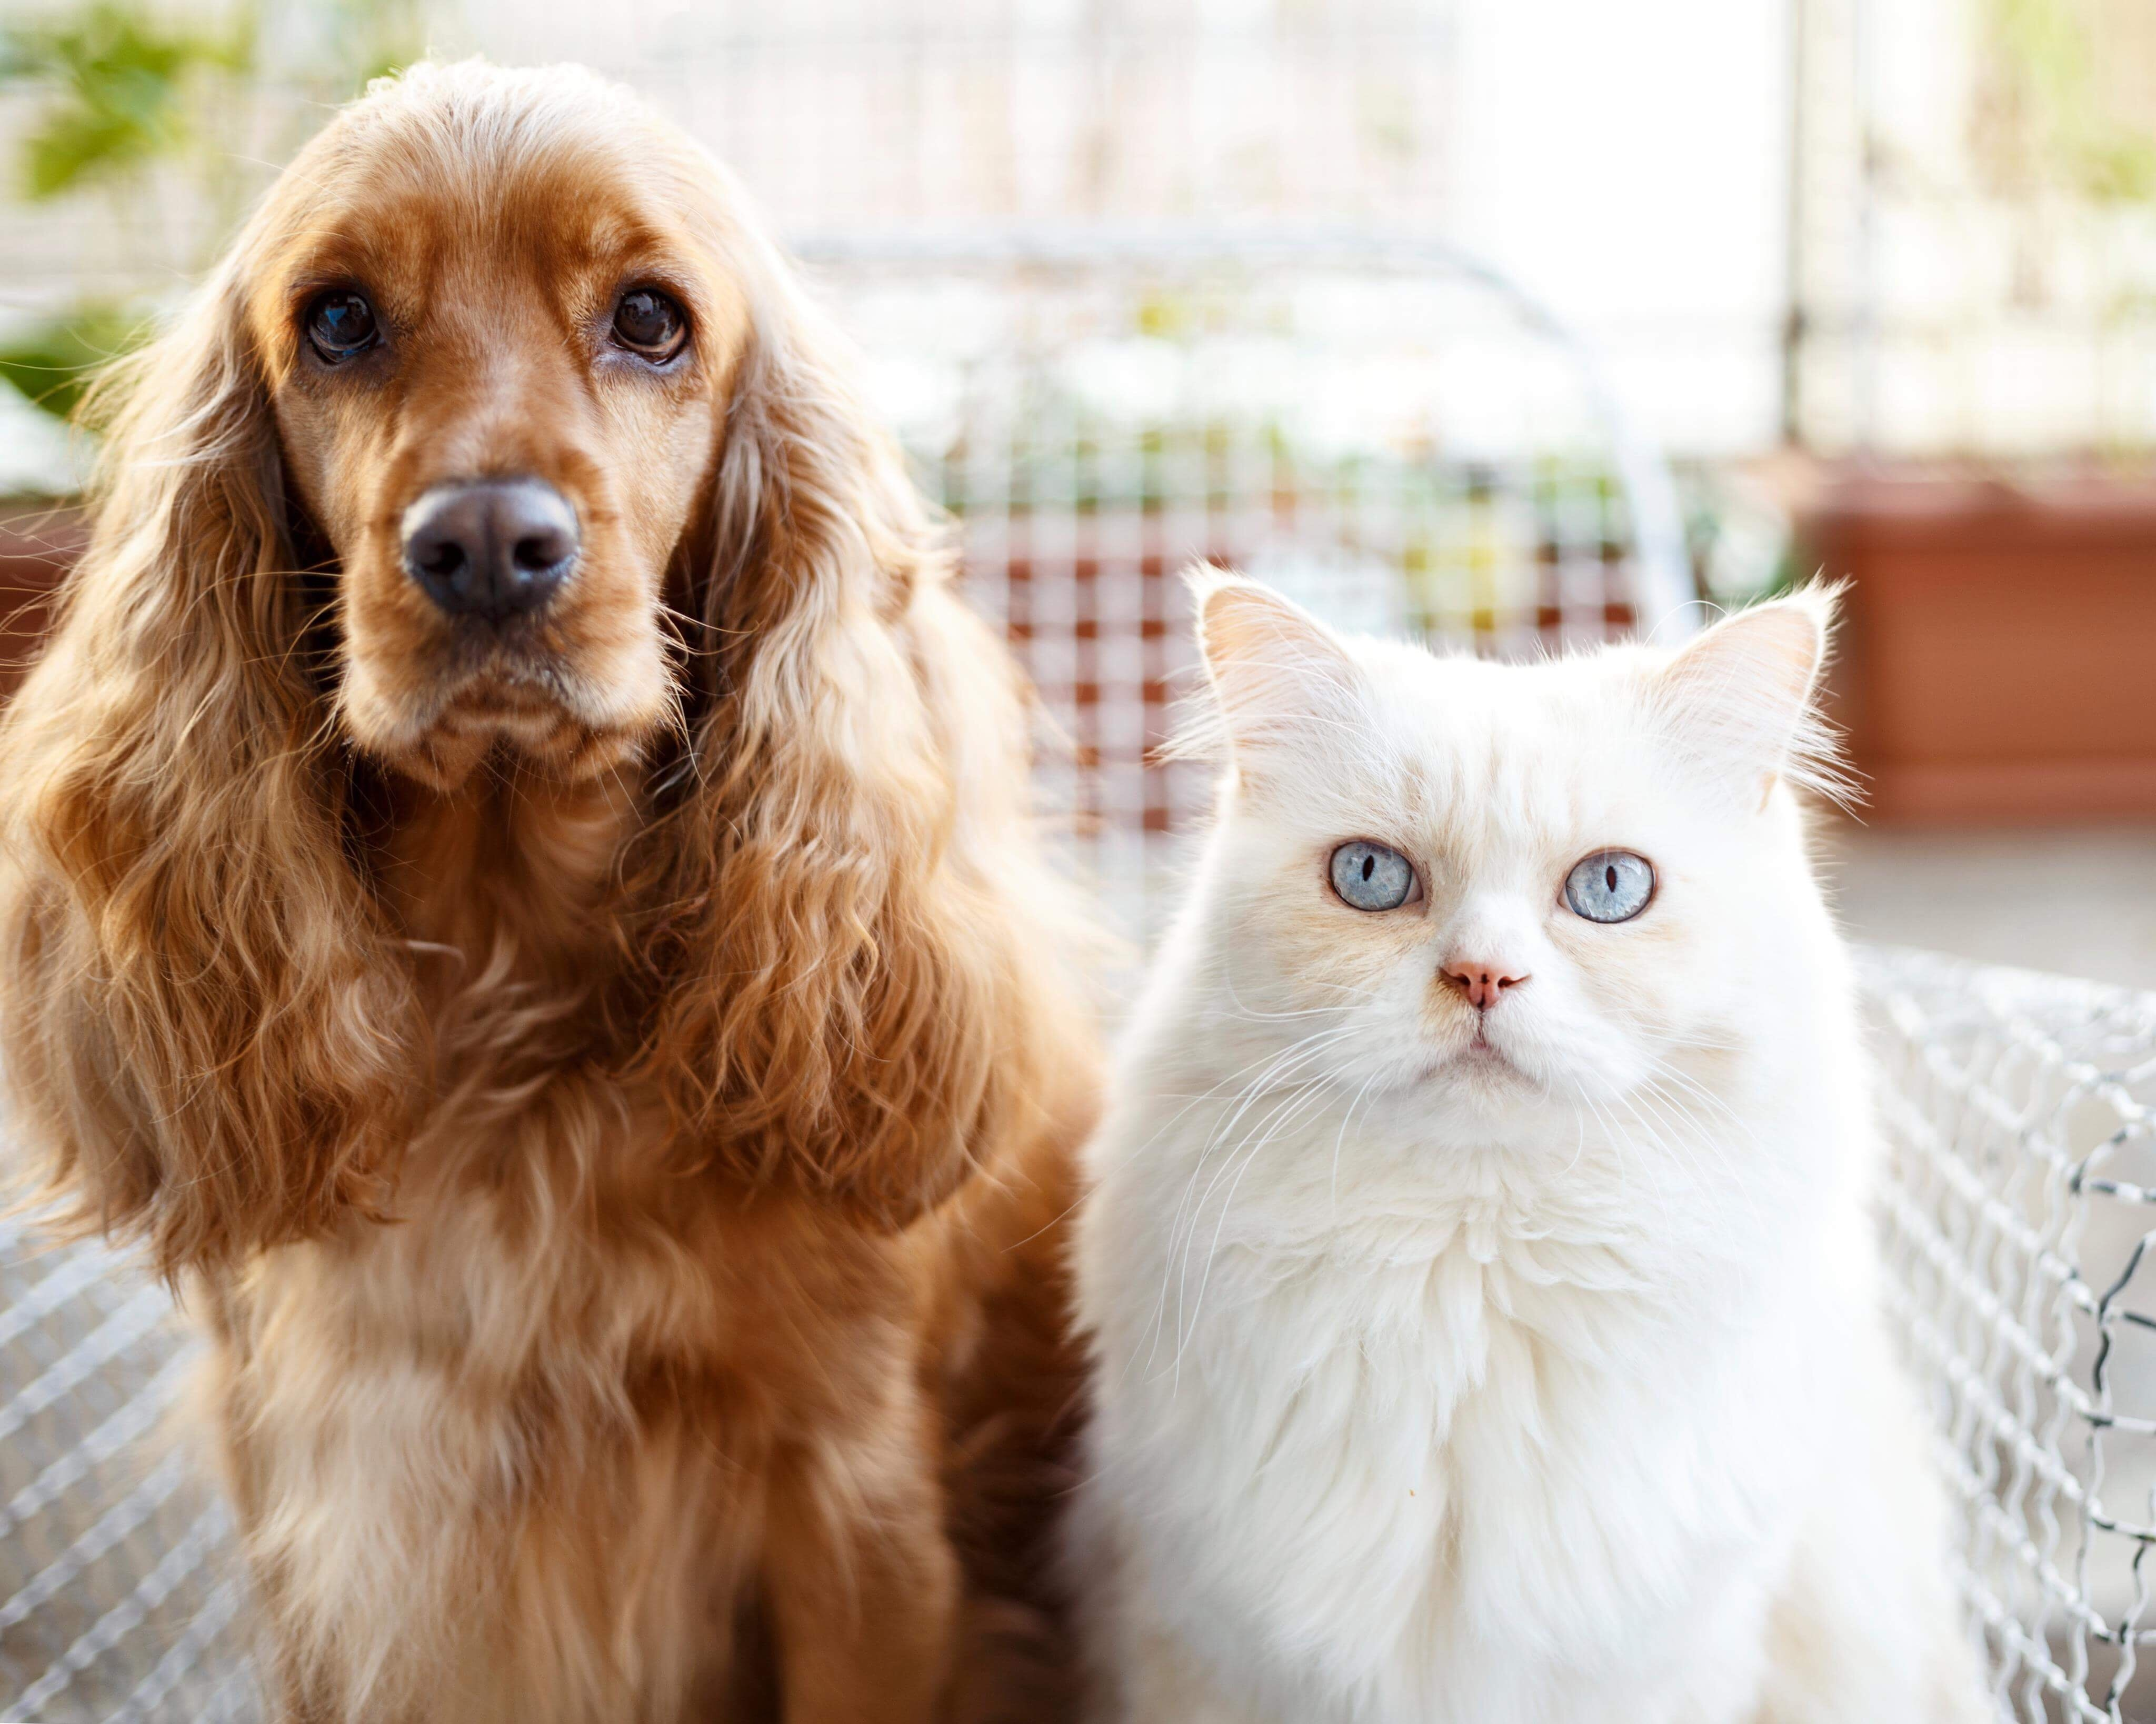 Can pets get coronavirus? How to look after your dogs and cats